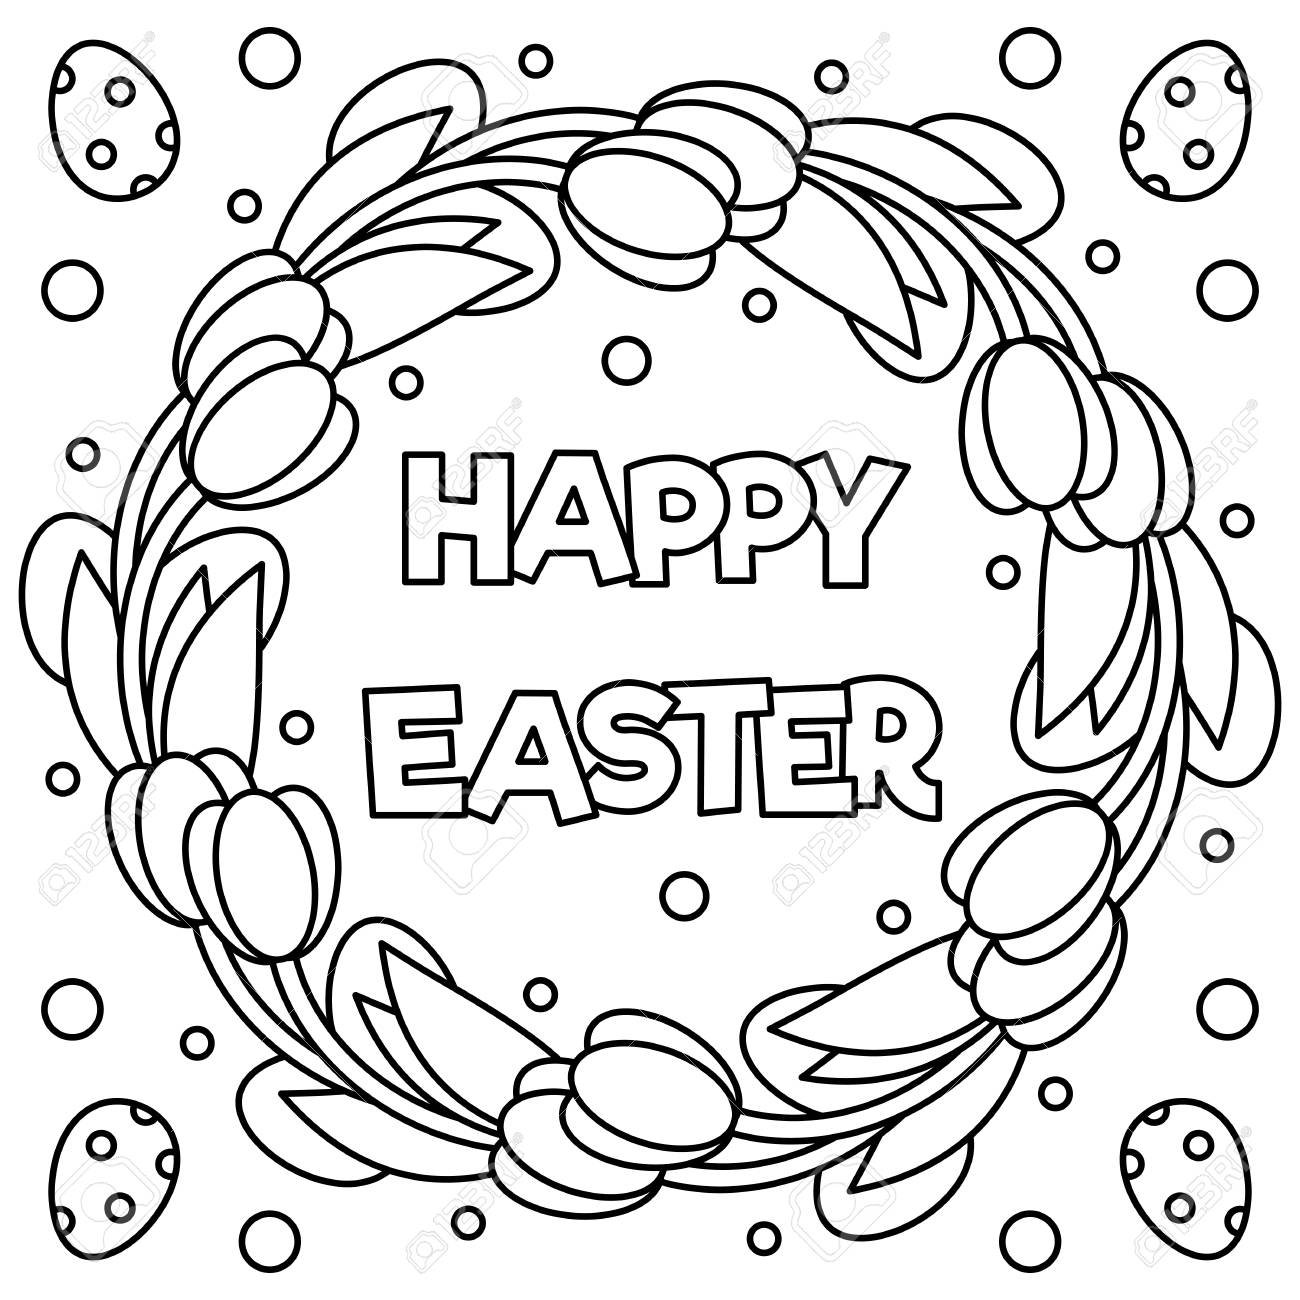 Happy Easter Coloring Page Black And White Vector Illustration Royalty Free Cliparts Vectors And Stock Illustration Image 96068032